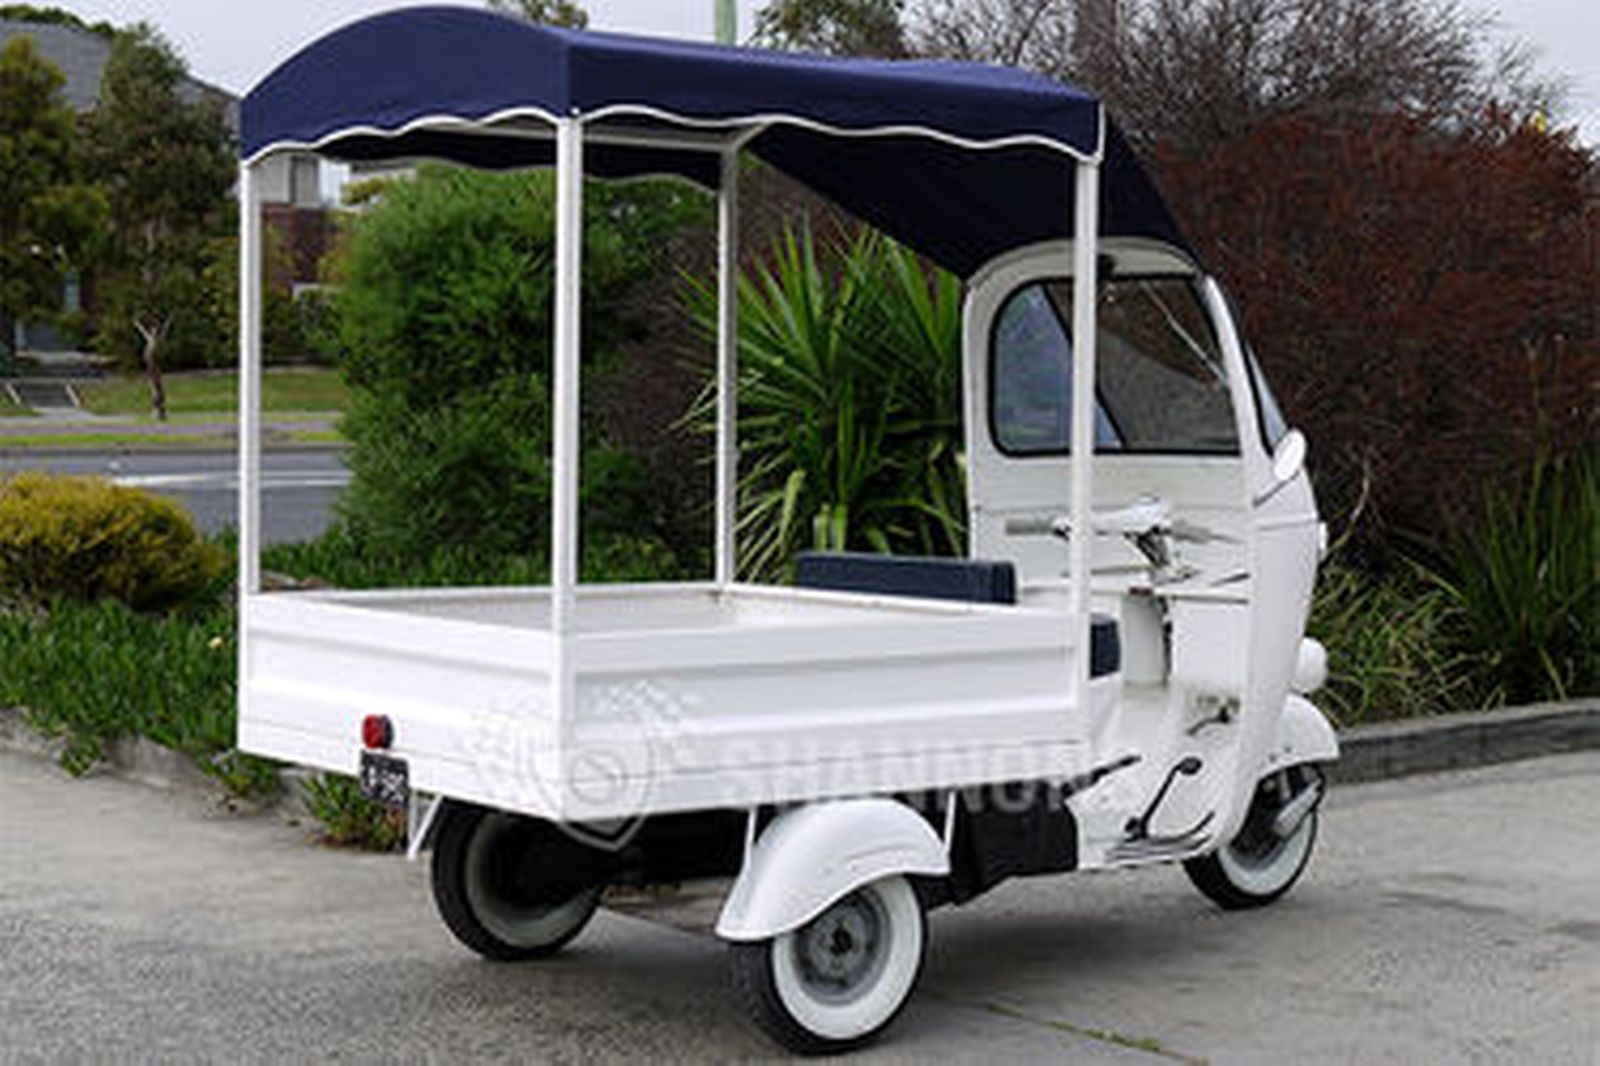 sold: piaggio ape 'ac1' 150cc 3-wheeler auctions - lot 7 - shannons